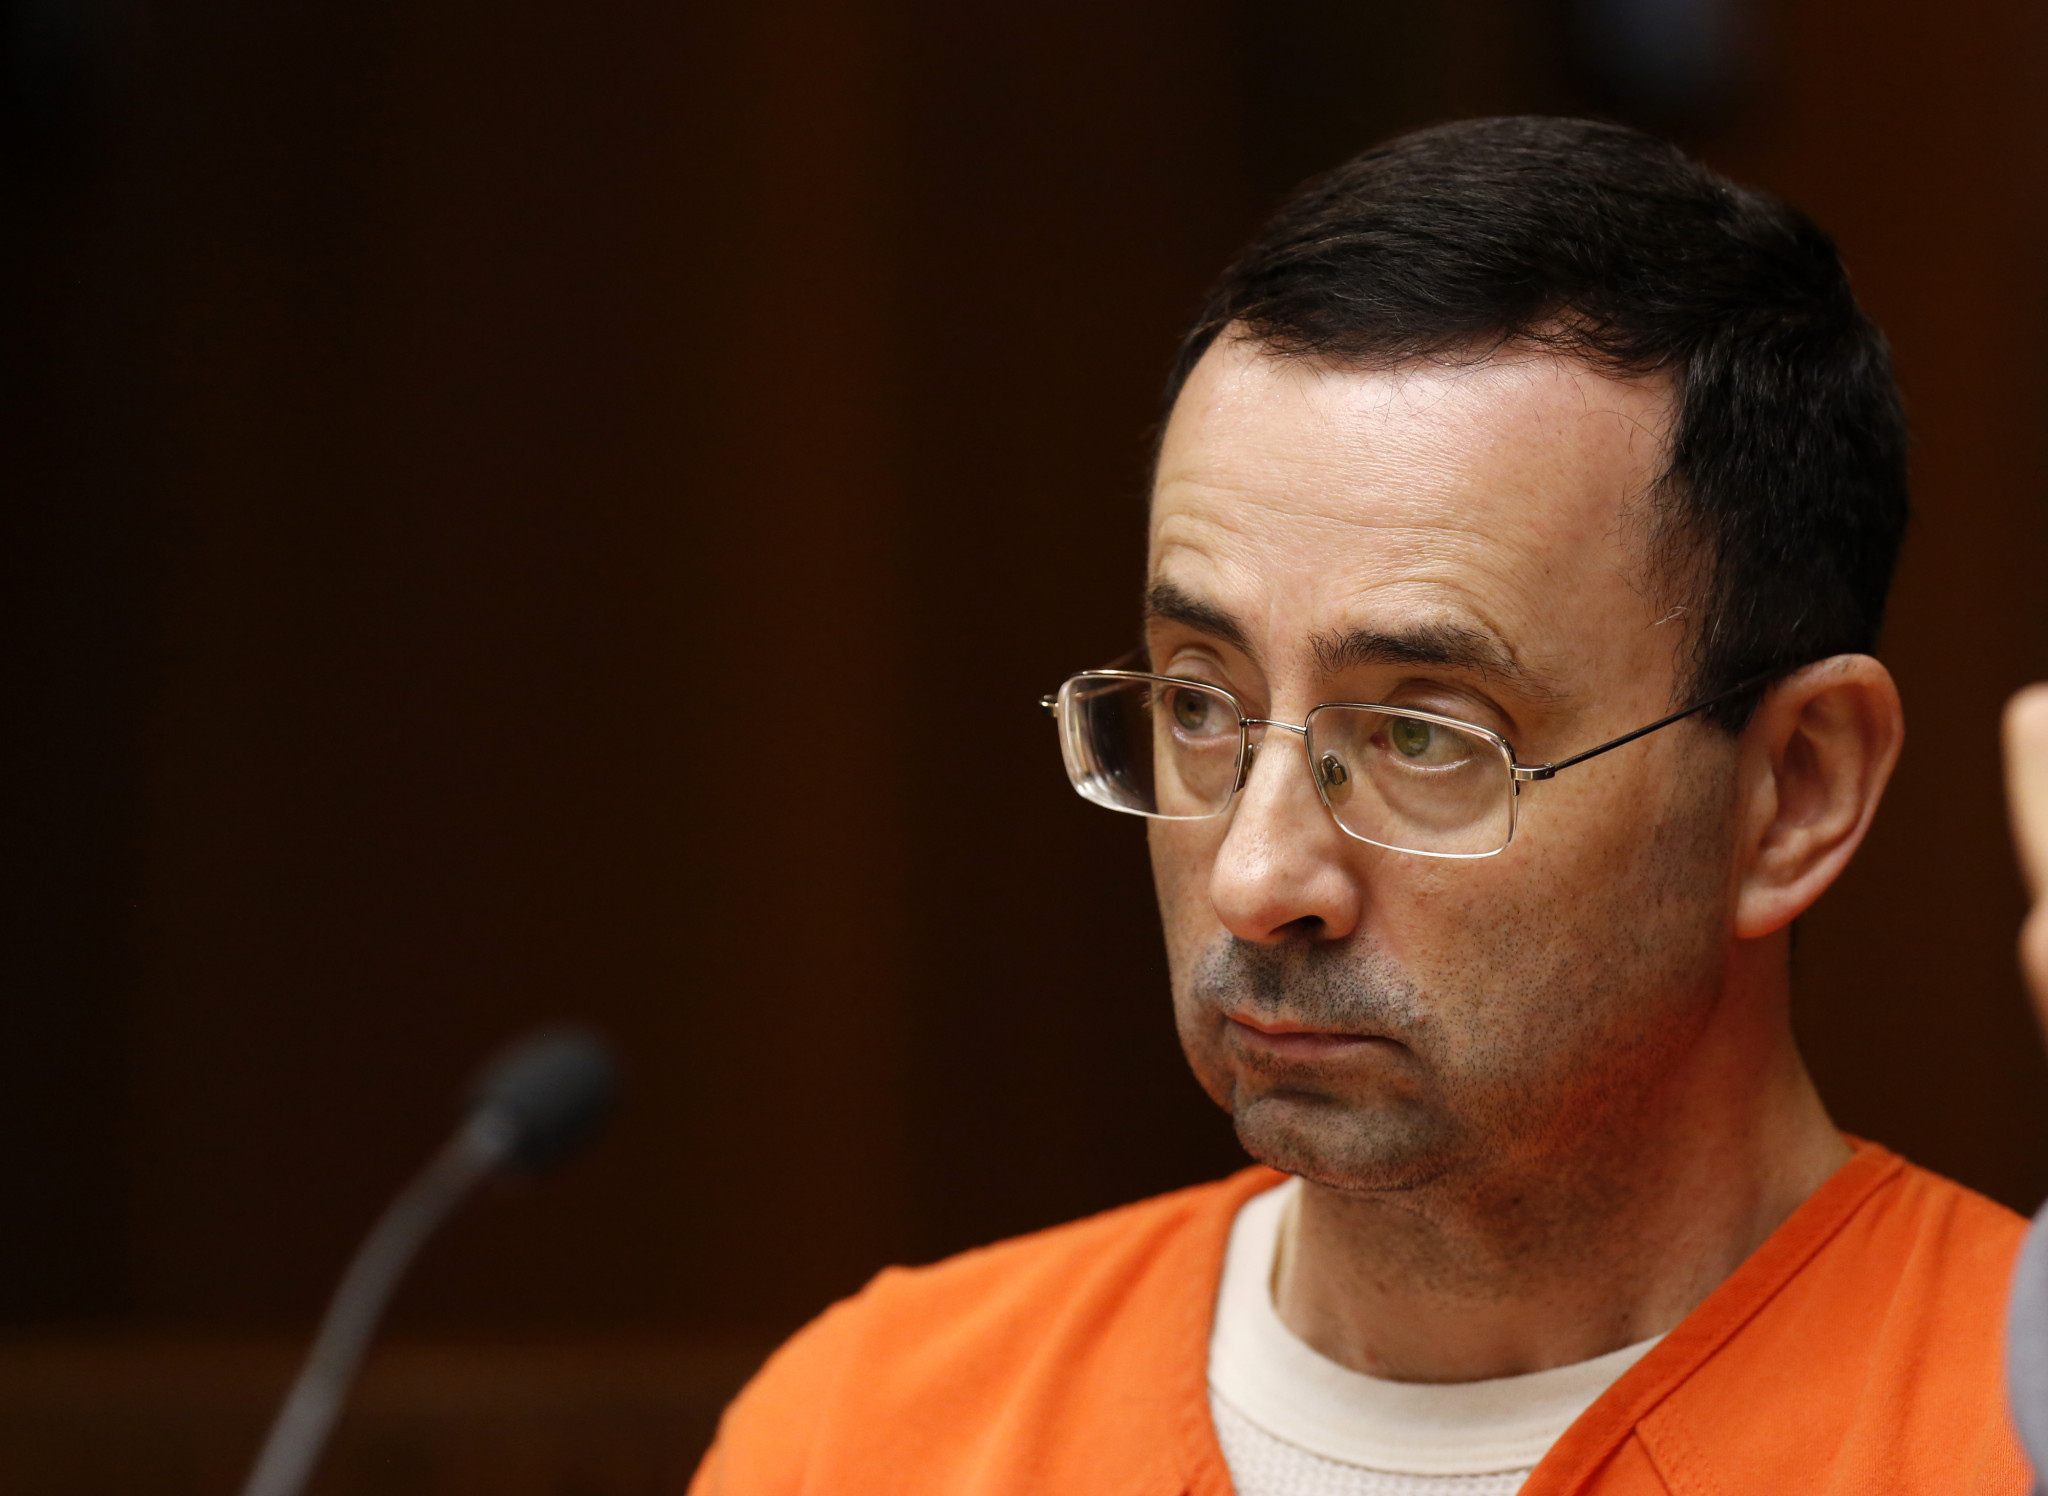 The disgraced former USA Gymnastics doctor Larry Nassar is serving an effective life sentence  ©Getty Images